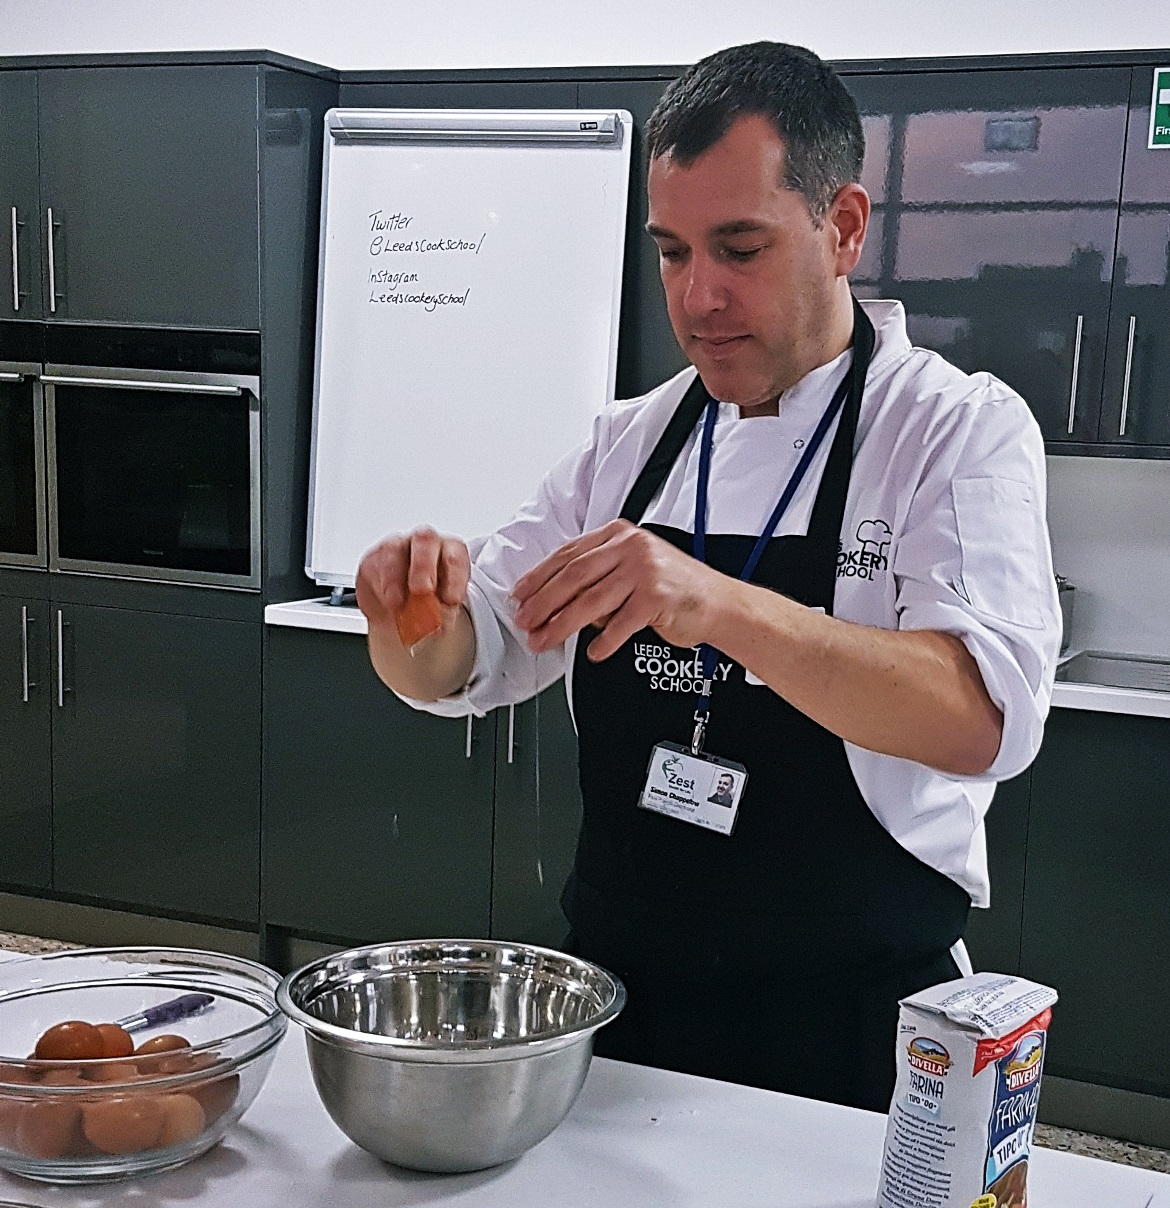 Cracking eggs to make pasta dough - Leeds Cookery School review by BeckyBecky Blogs